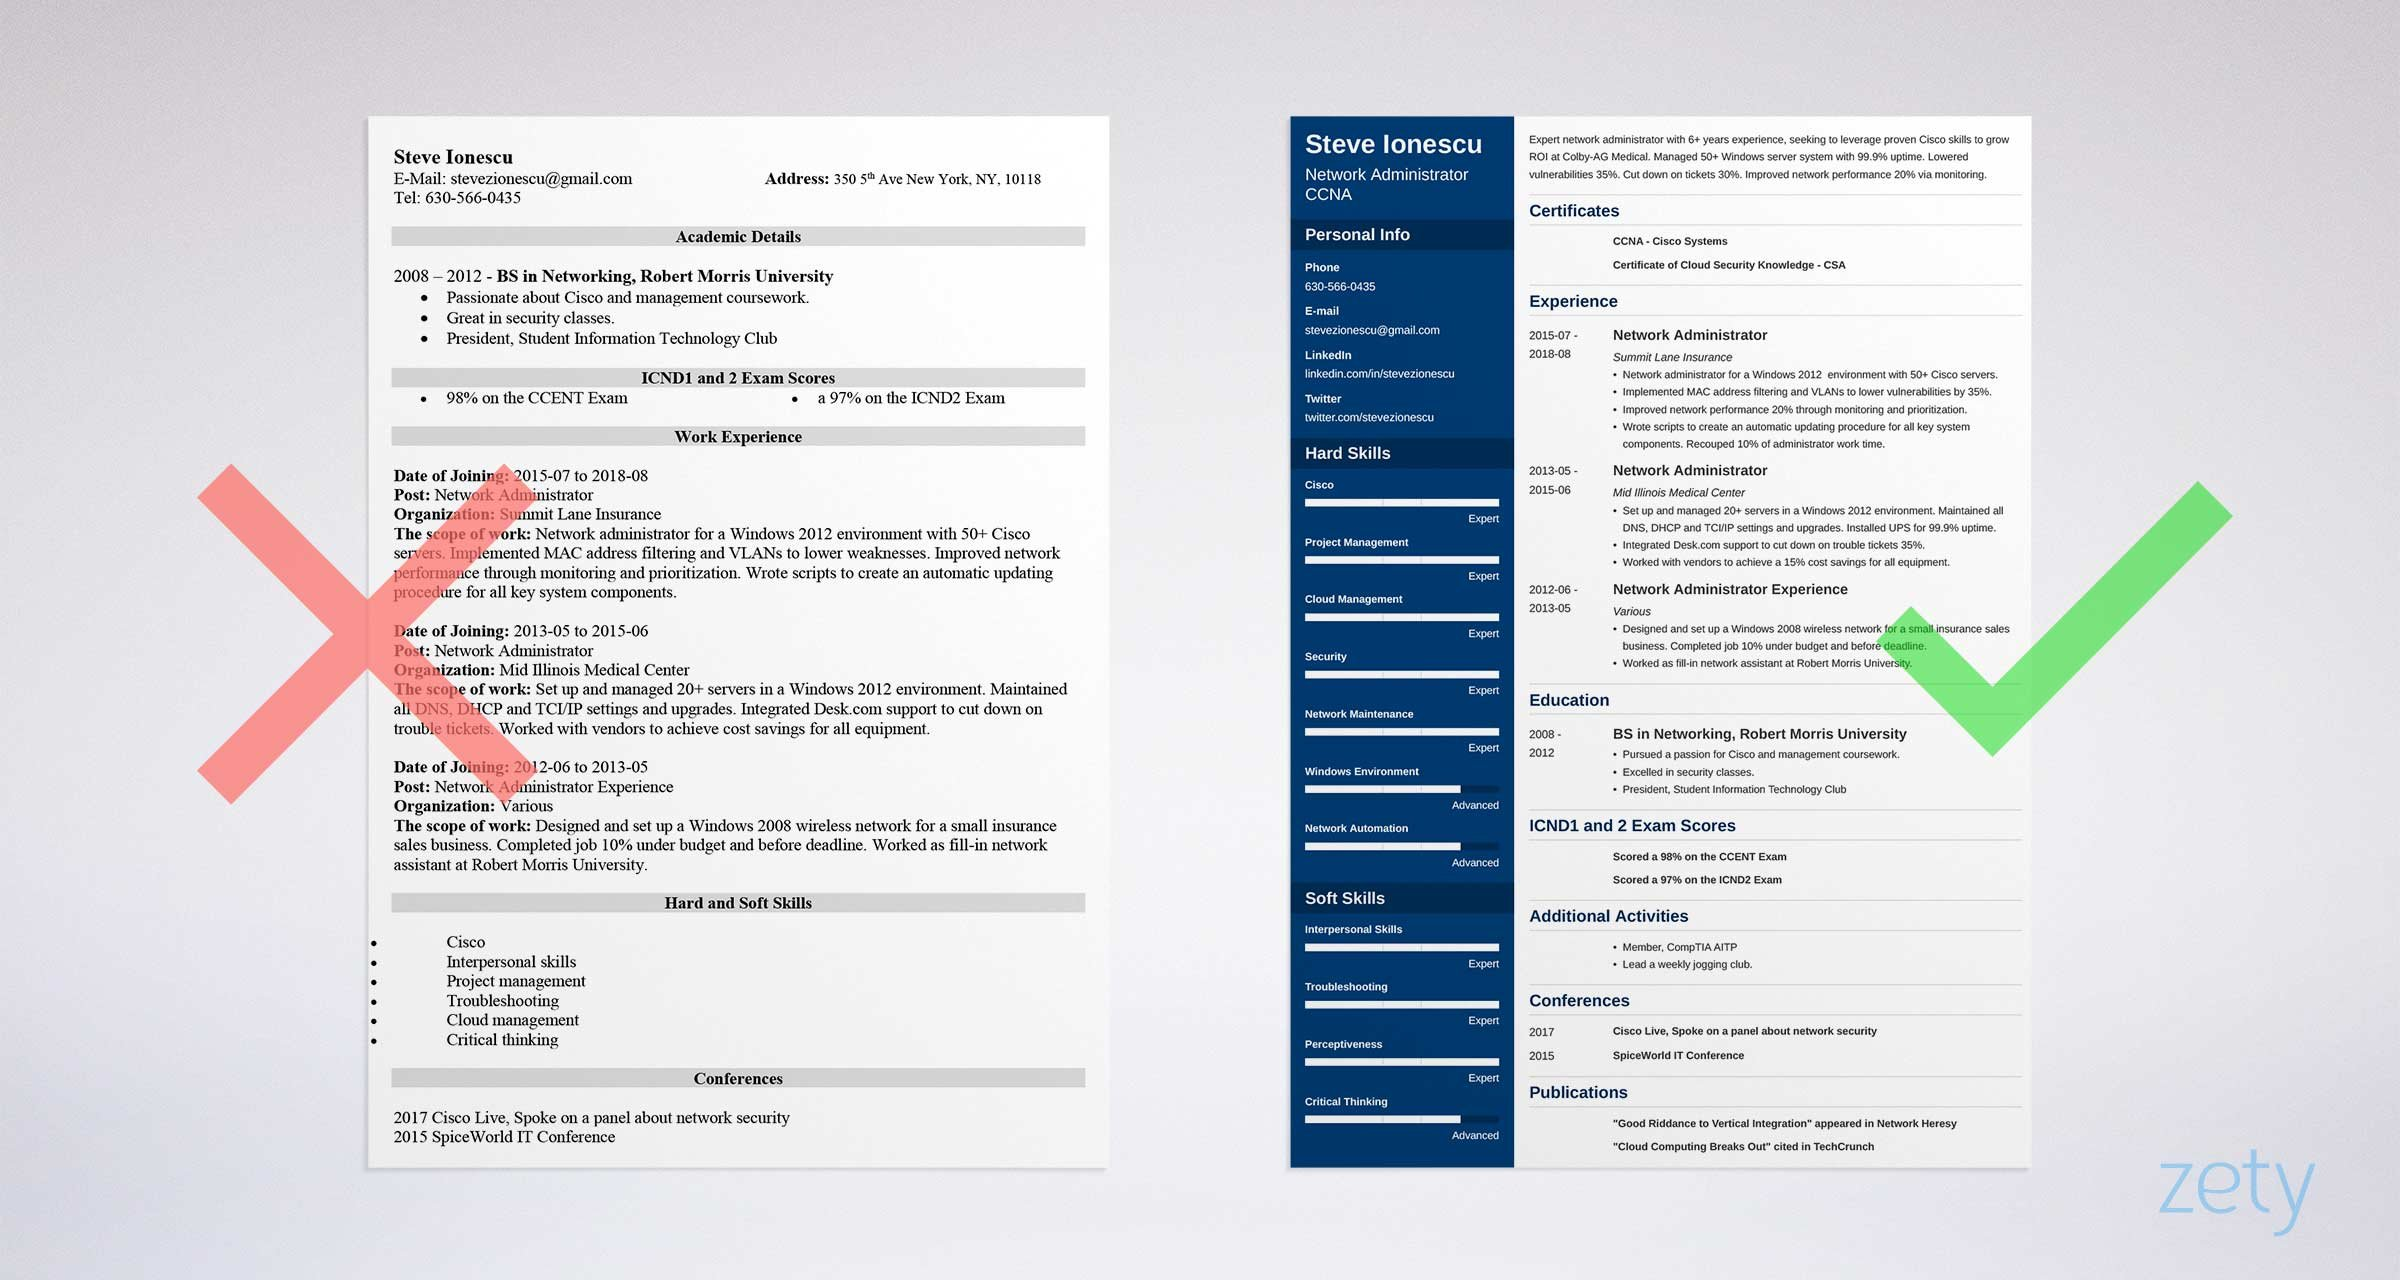 network administrator resume example see 20 resume templates and create your resume here - Network Administrator Resume